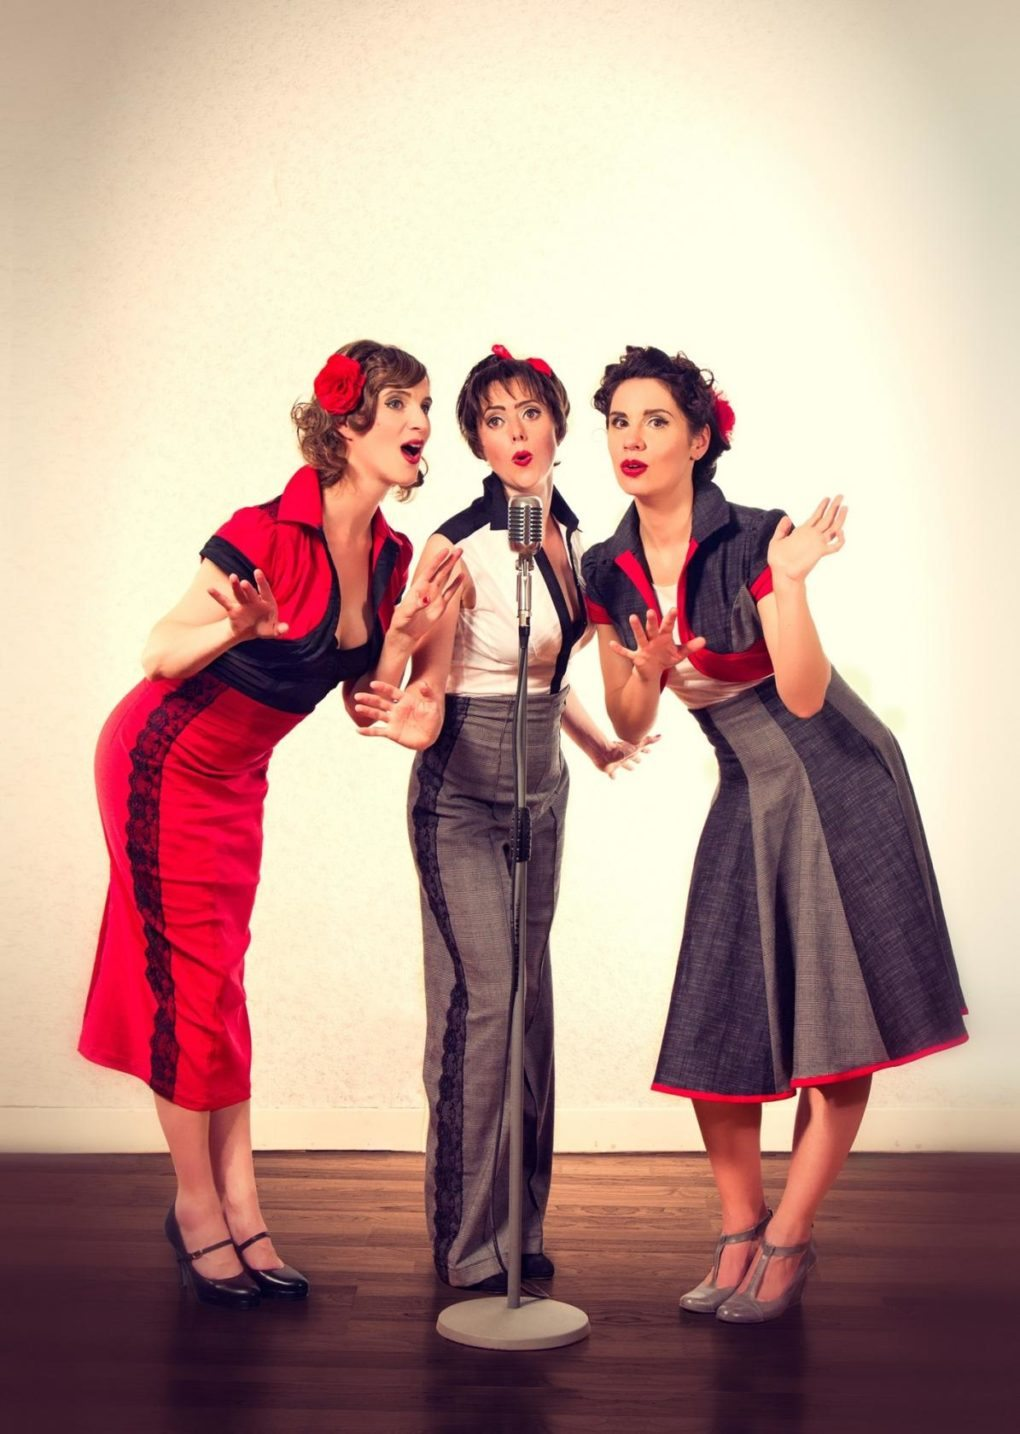 Les swingirls Concarneau